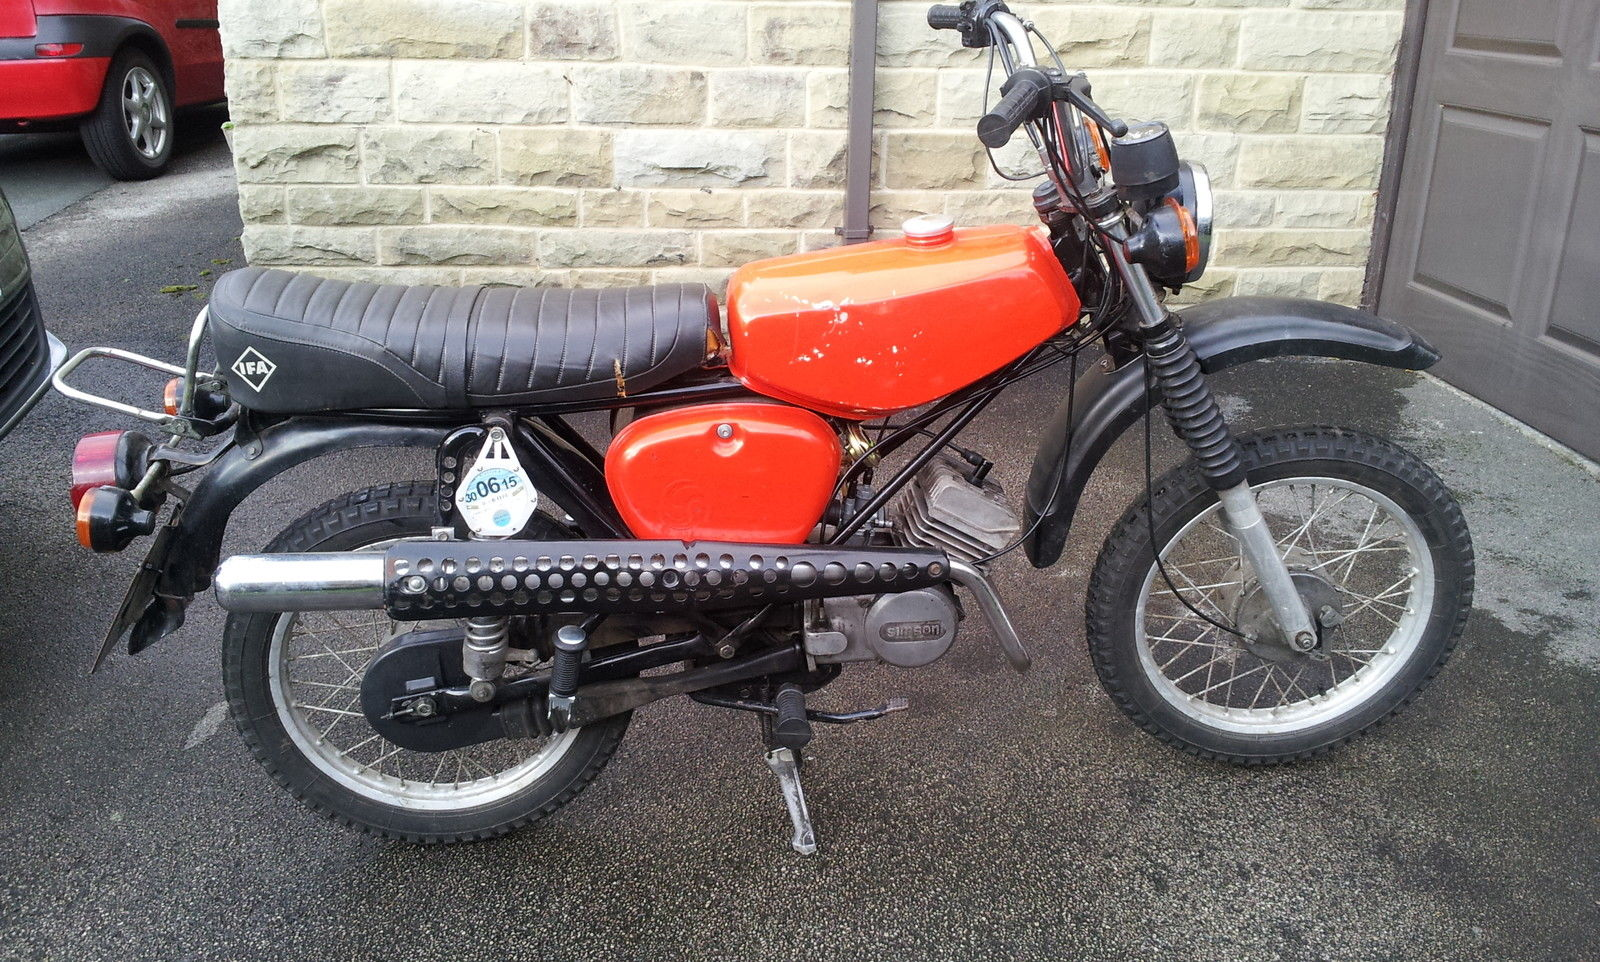 mz simson s51 enduro moped 49cc plus spares retro learner. Black Bedroom Furniture Sets. Home Design Ideas